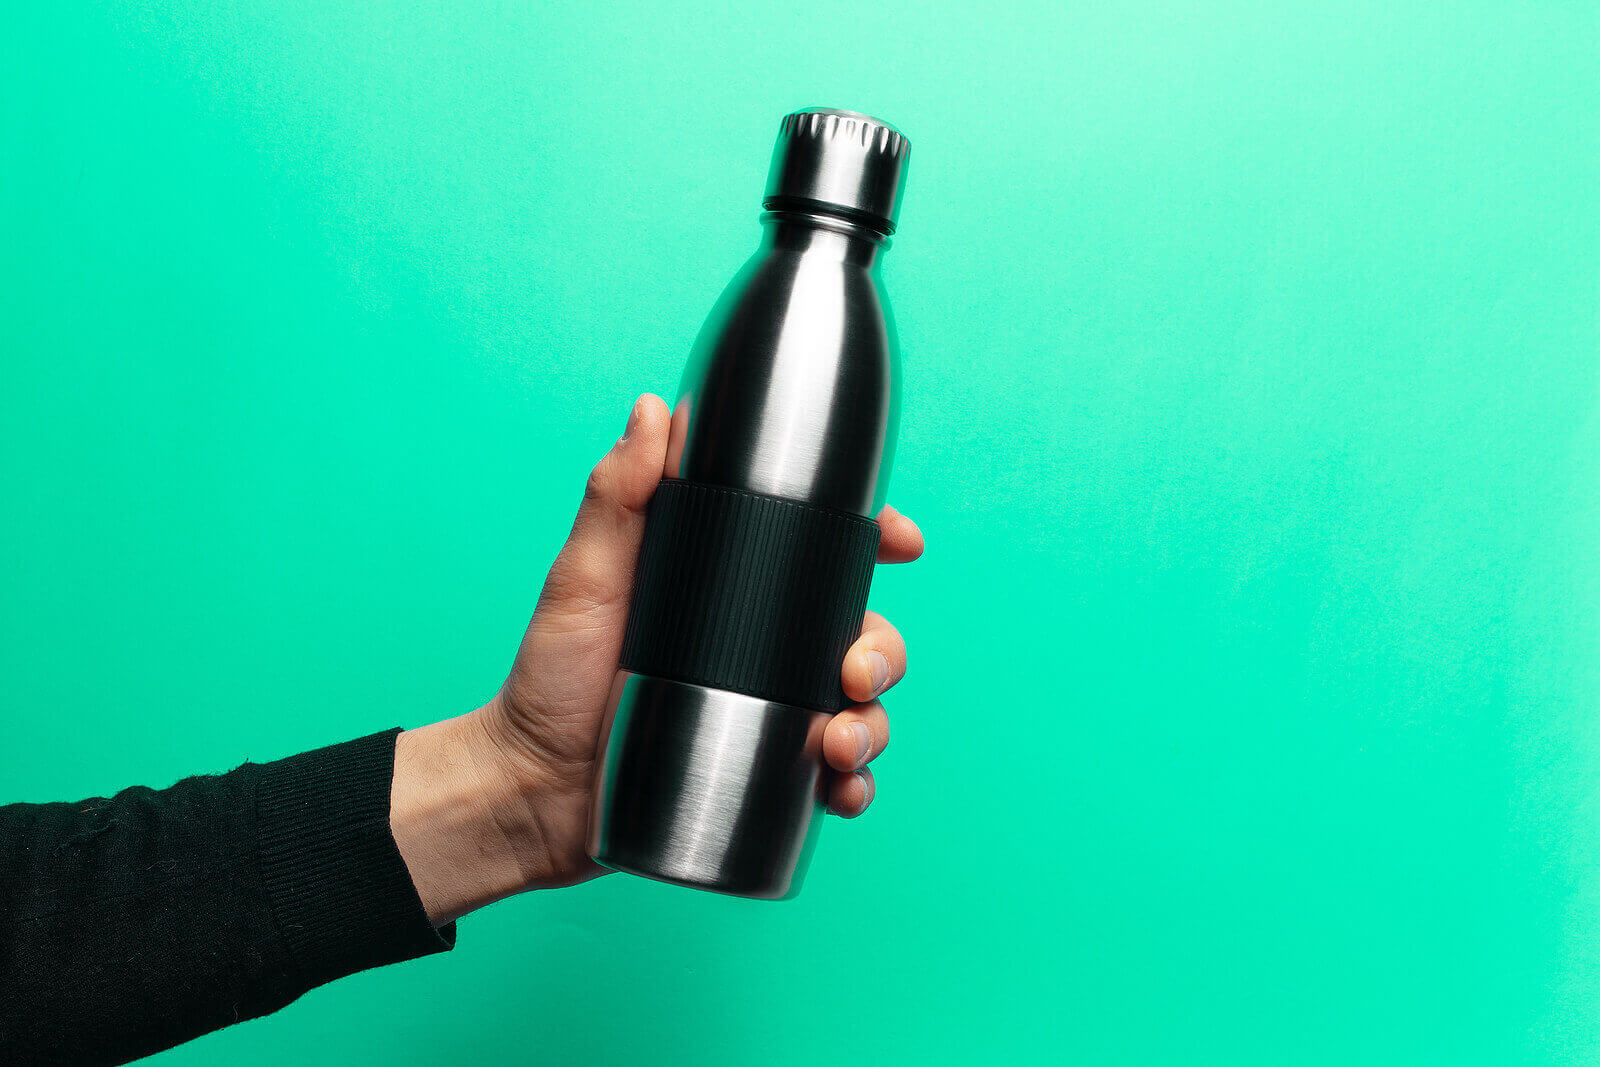 A hand holding a reusable water bottle against a green background